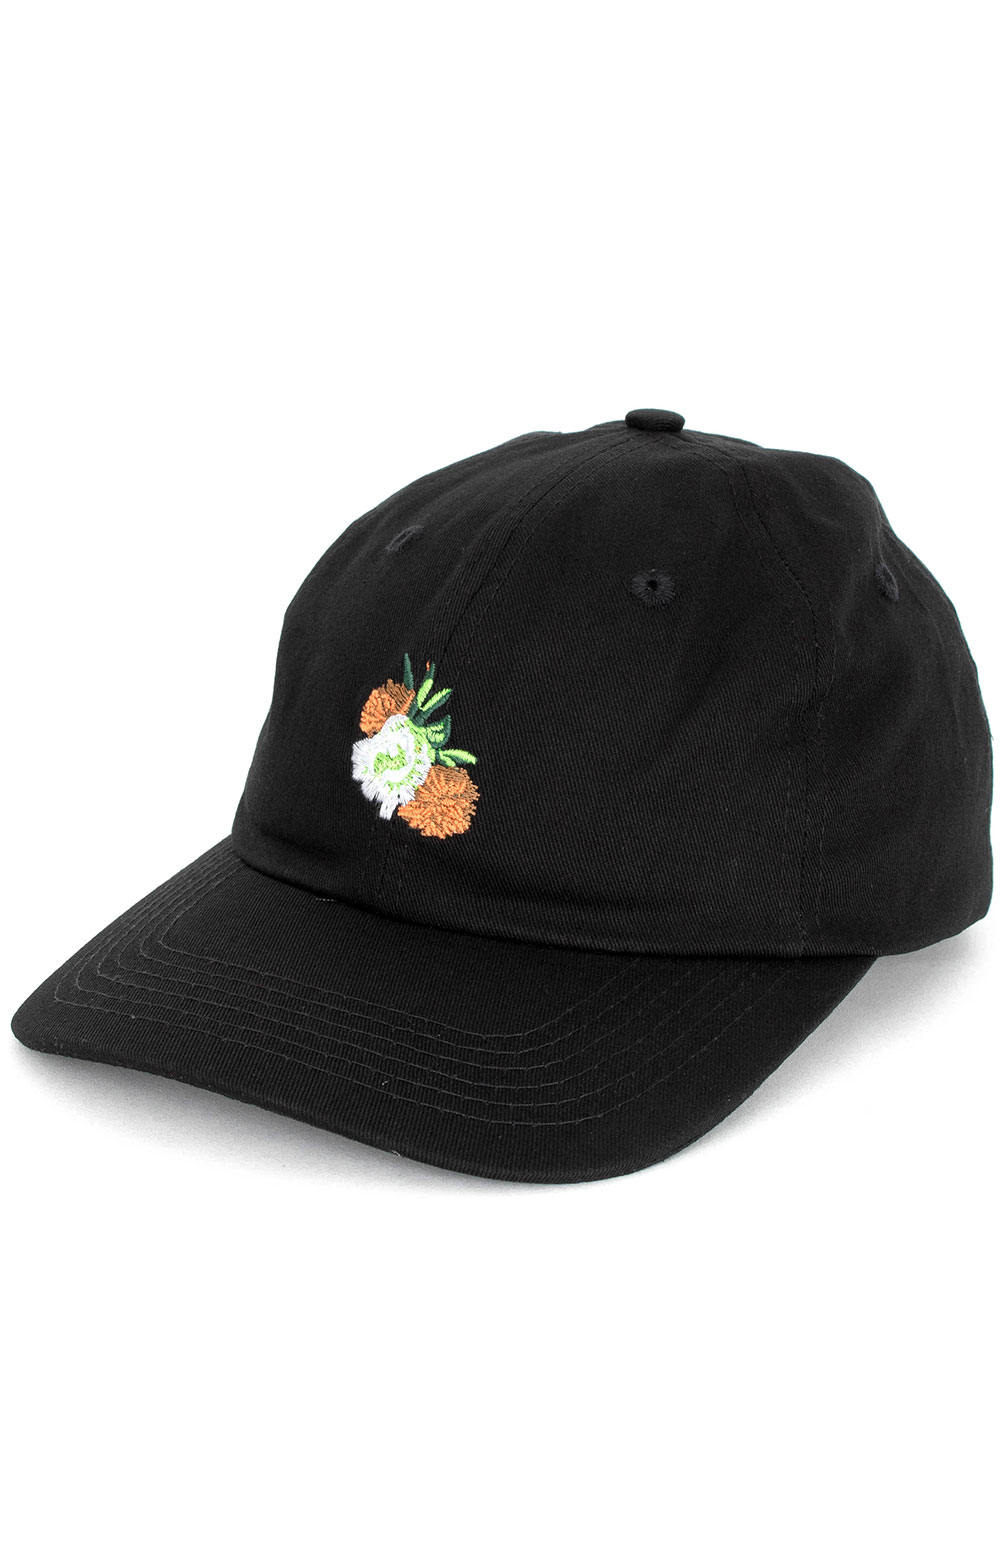 Yoga Flame Dad Hat - Black